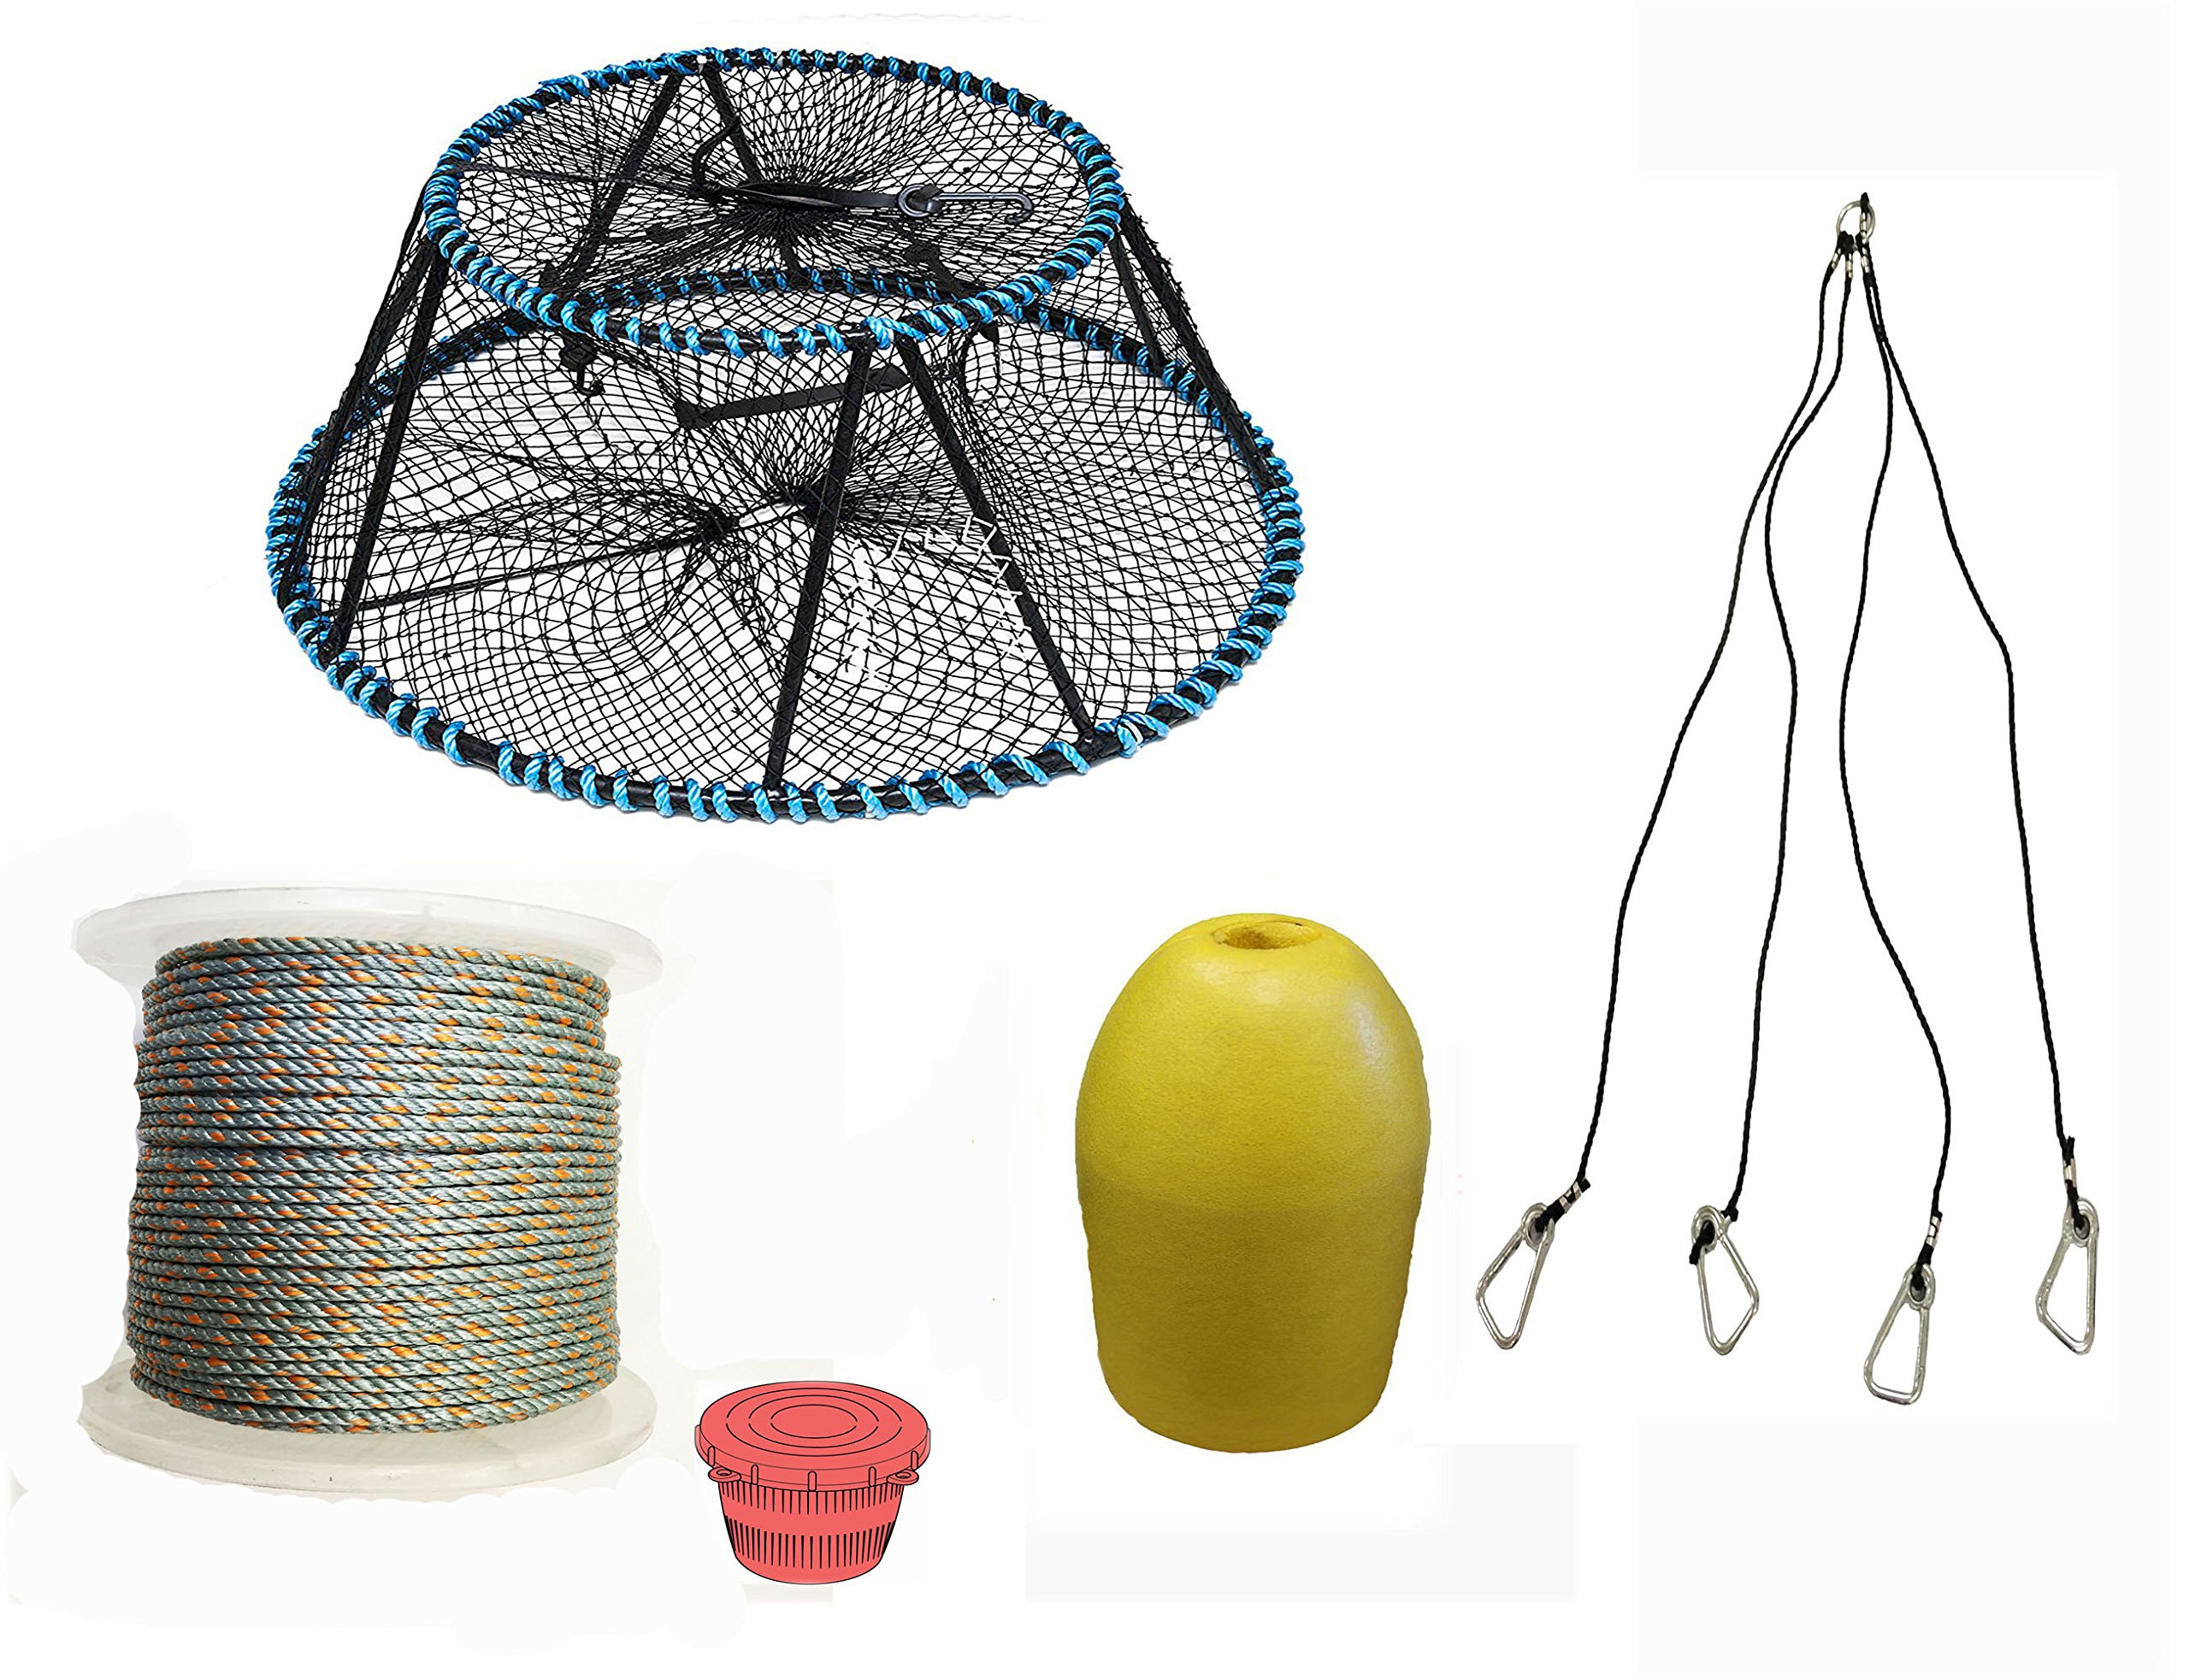 KUFA Sports Tower Style Prawn trap with 400' rope, Yellow float and Vented Bait Jar combo (CT150+PAL1+HA5)